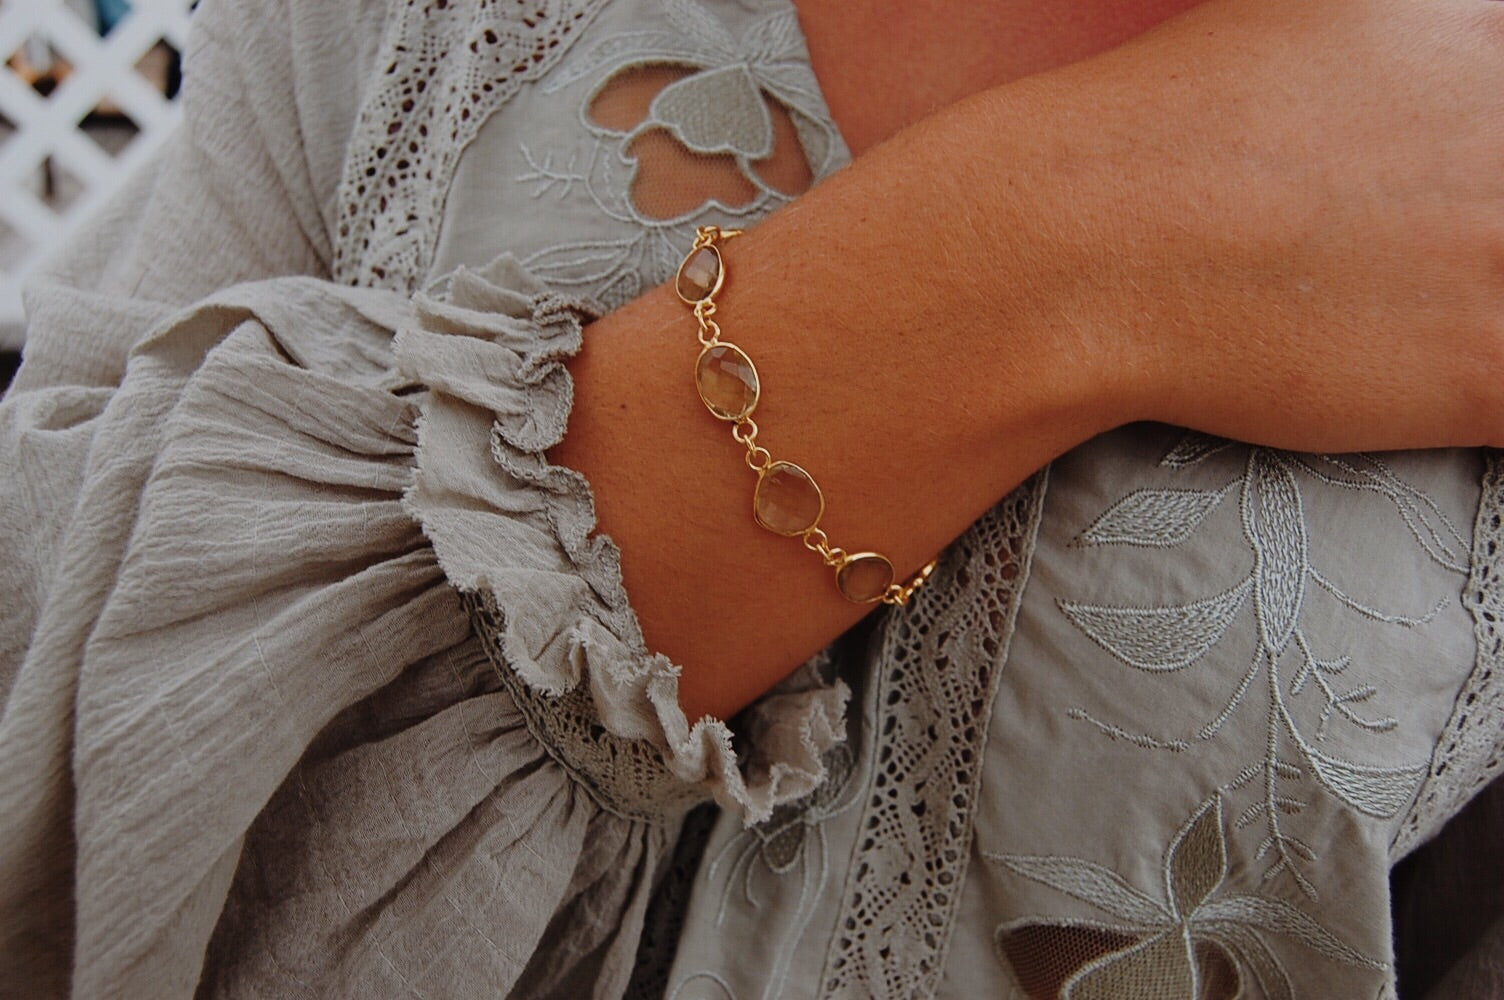 An Olive Branch Bracelet - Christiana Layman Designs